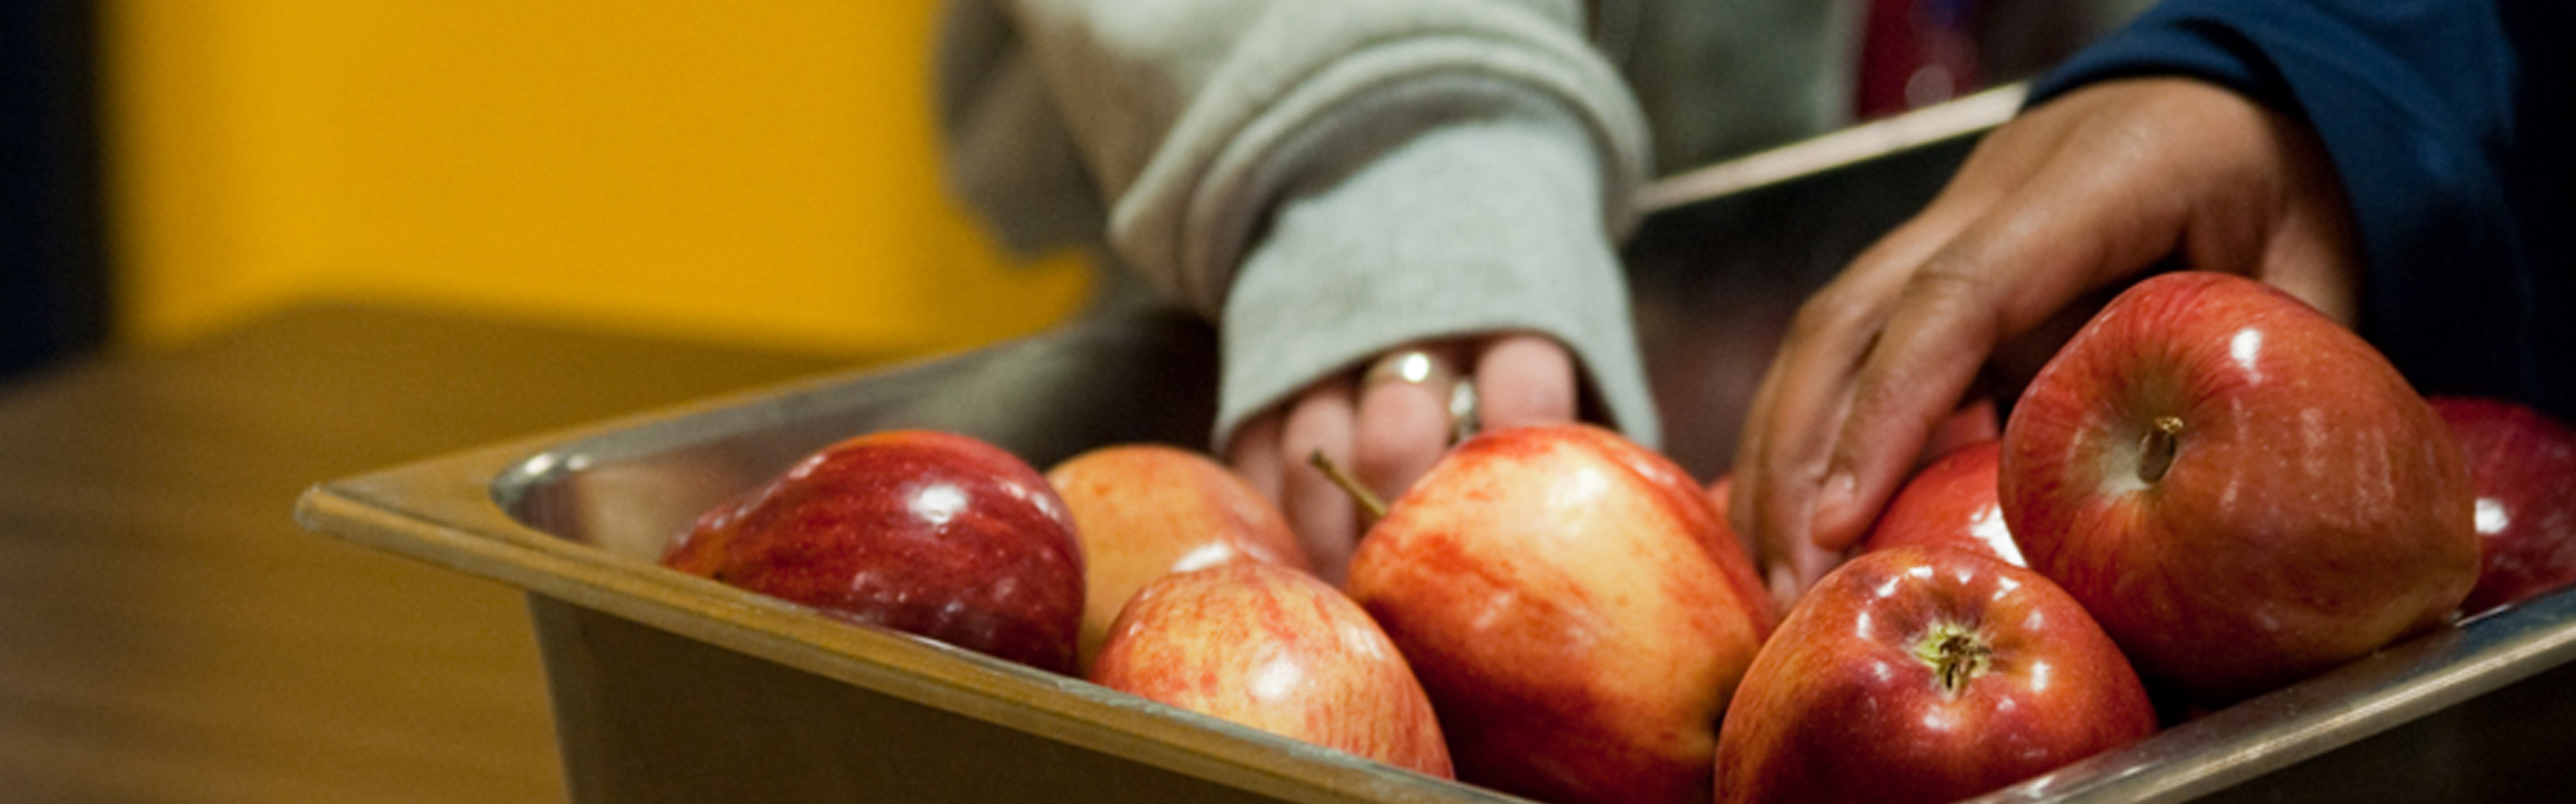 Children's Hands reaching into a bin full of red apples